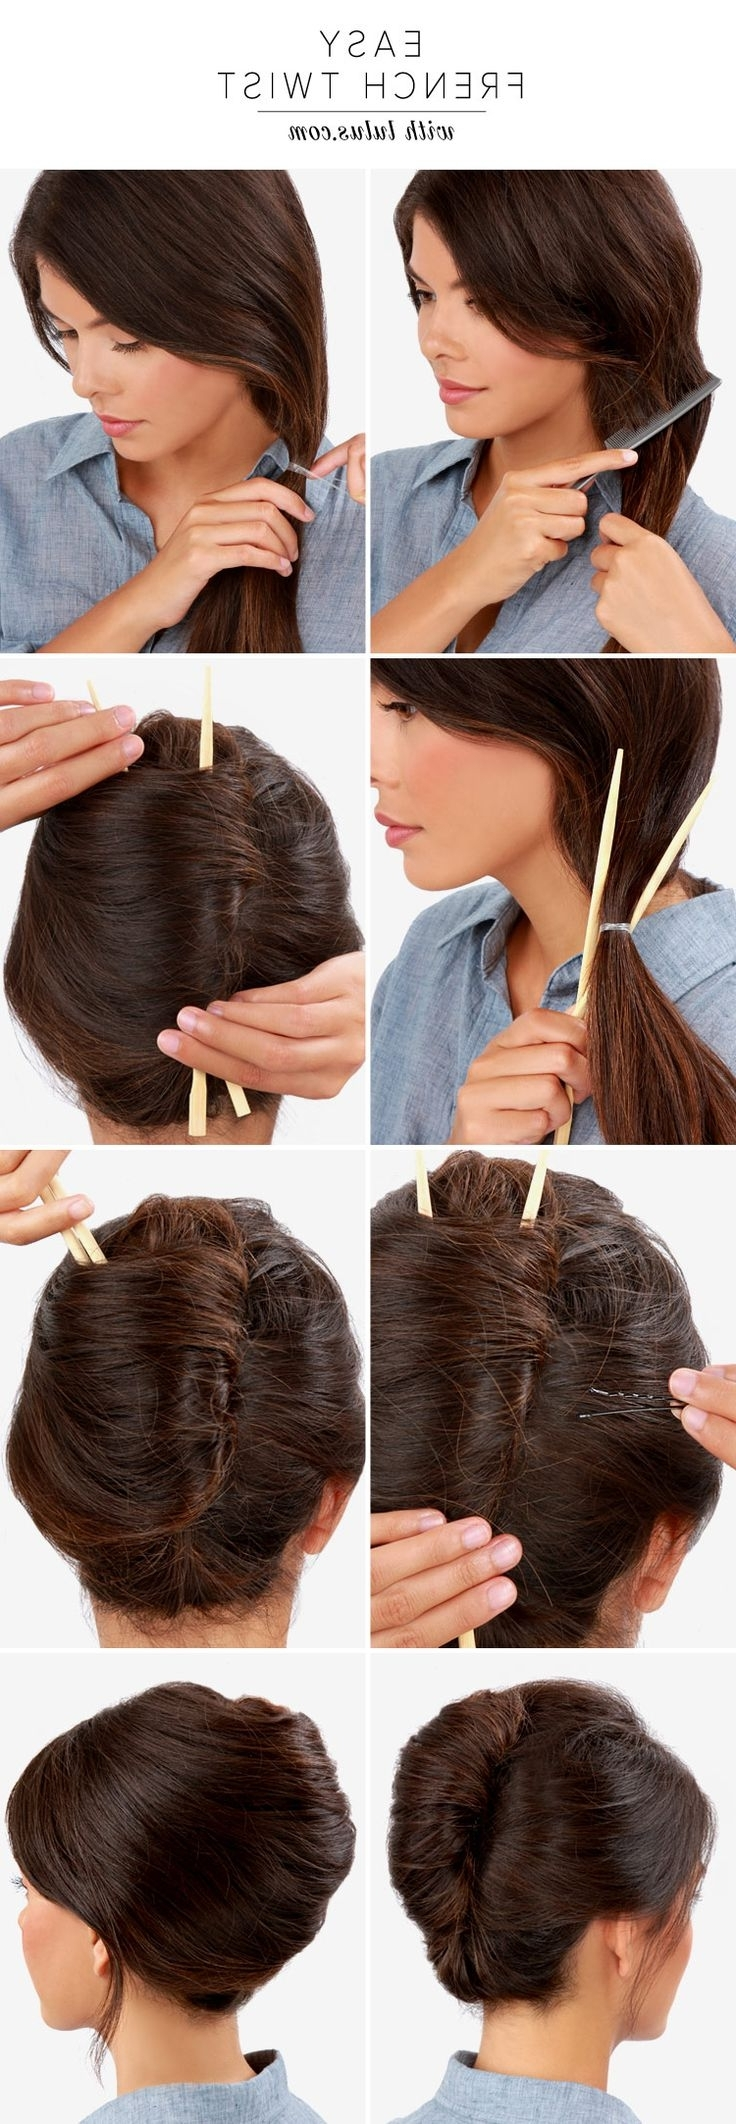 14 Fabulous French Twist Updos – Pretty Designs Within French Twist Updo Hairstyles (View 6 of 15)